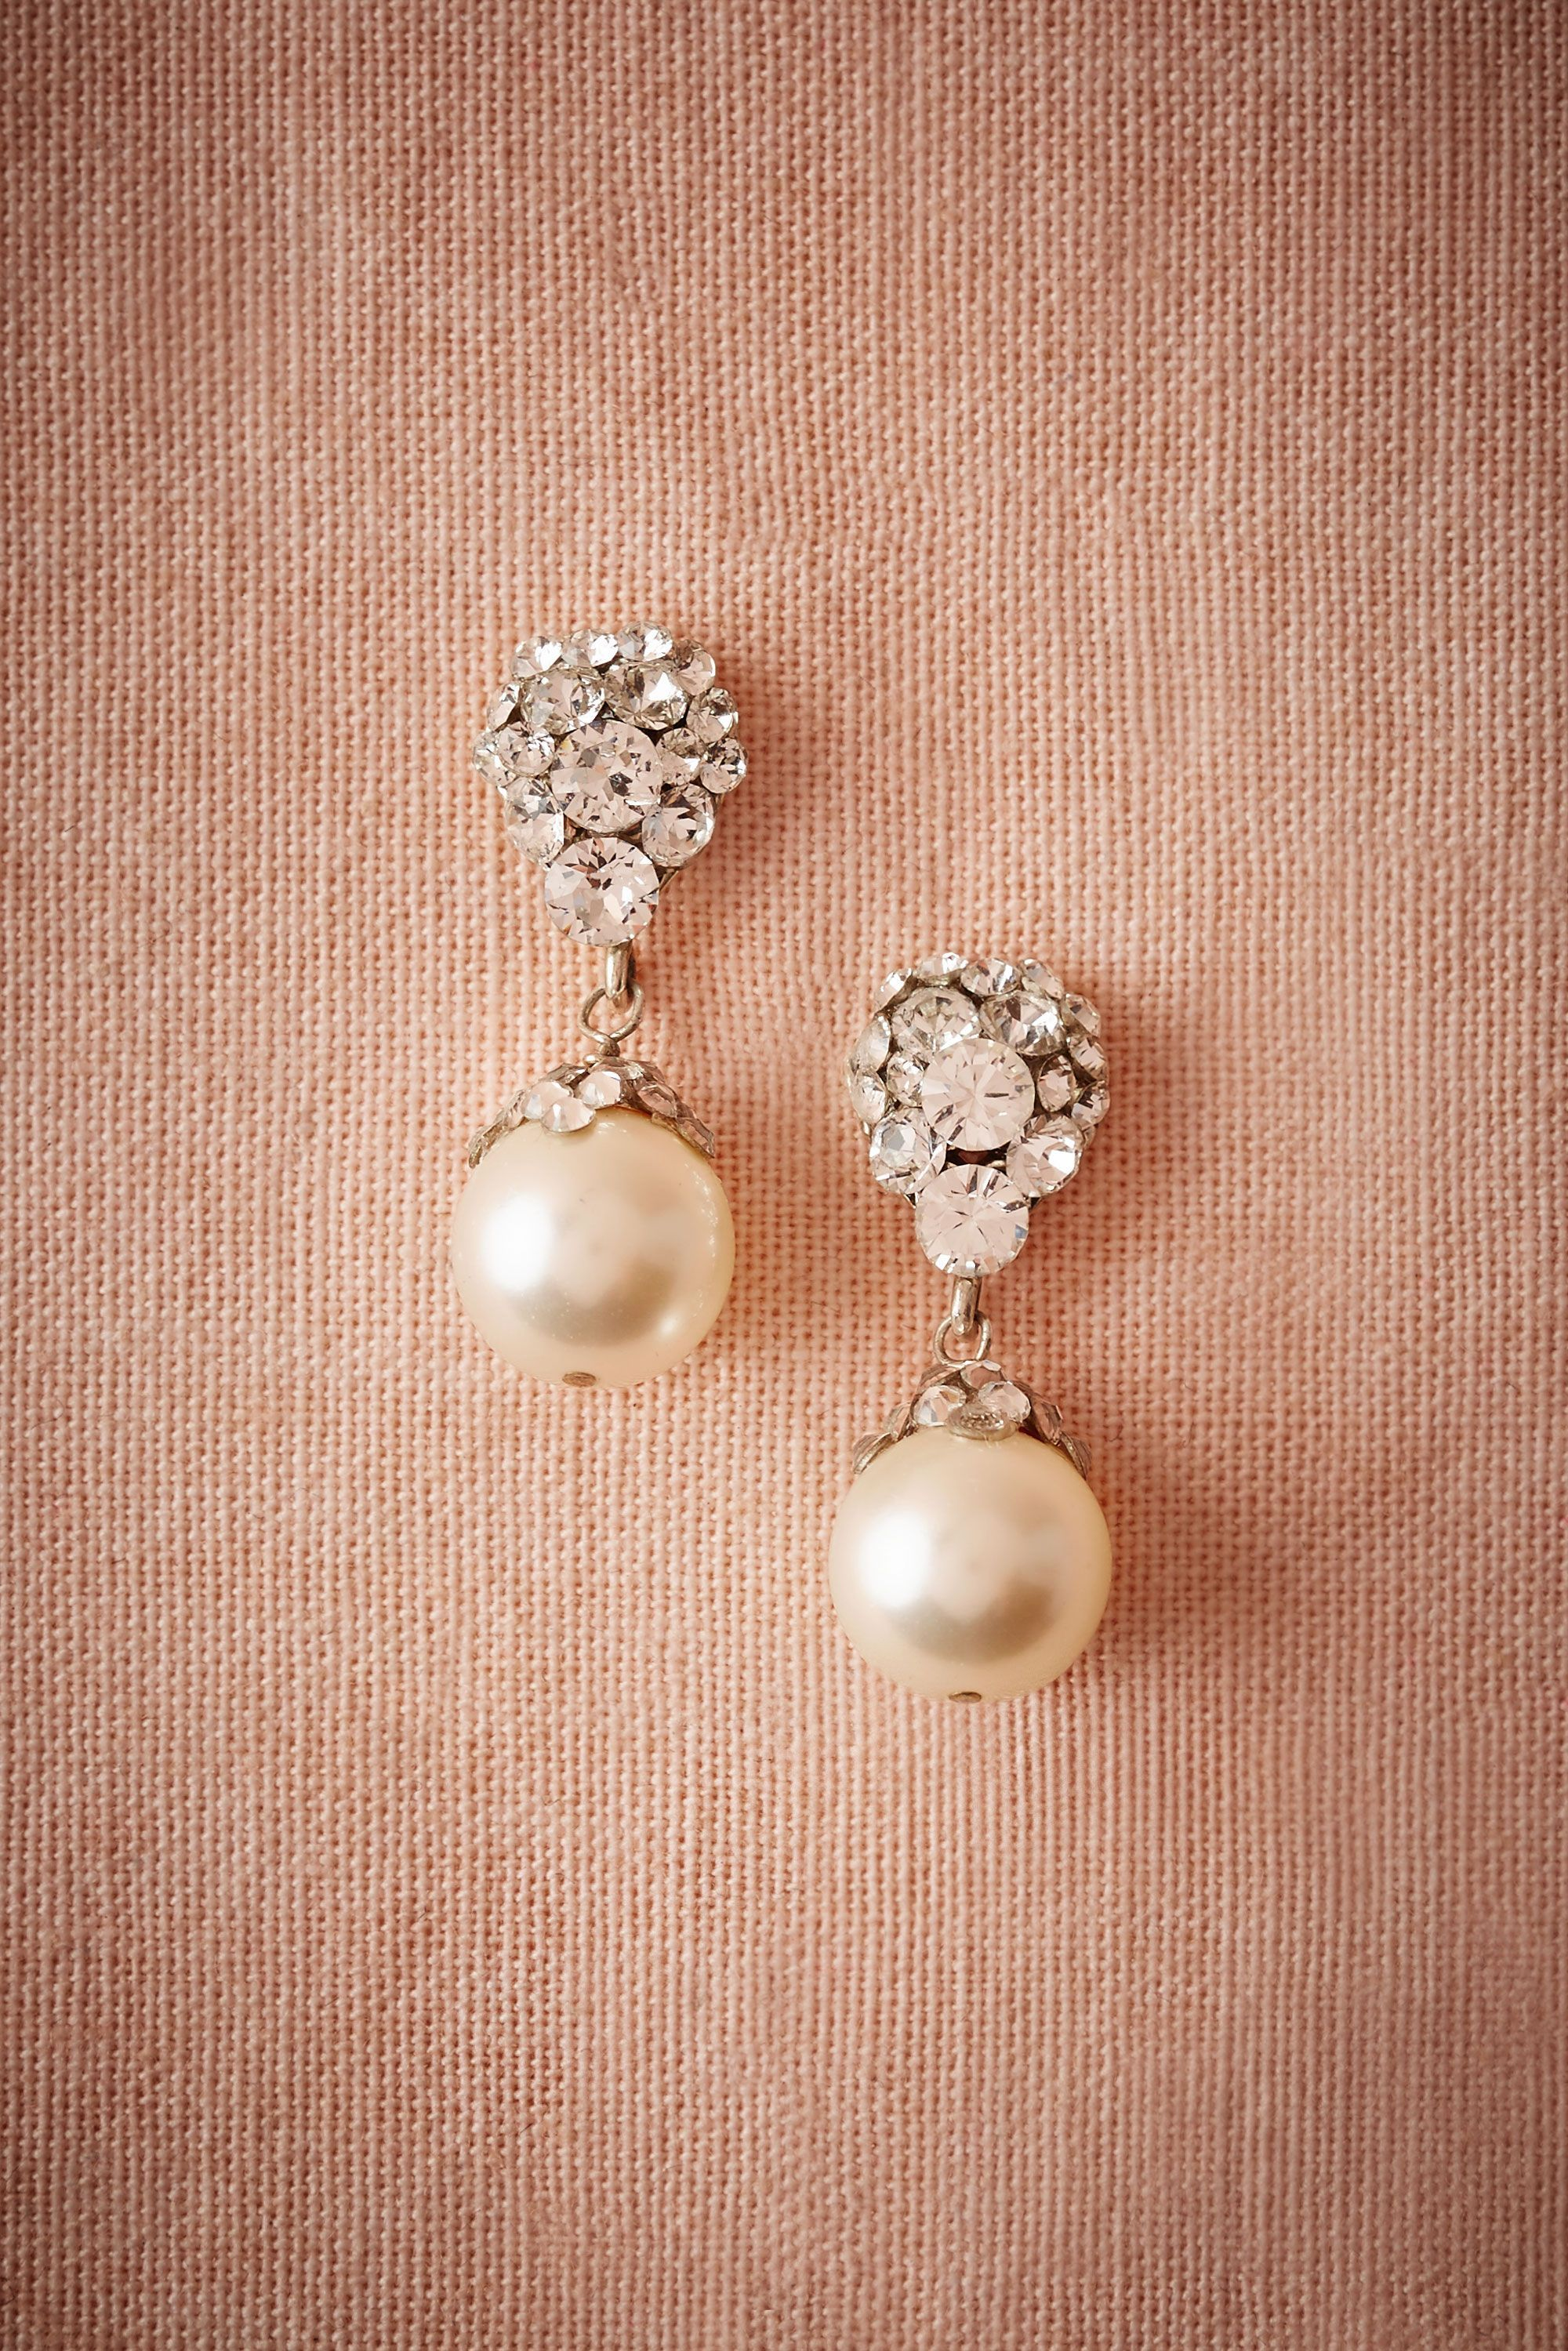 marquis fallon lyst faux monarch s cluster rhodium white in women pearl earrings jewelry stud